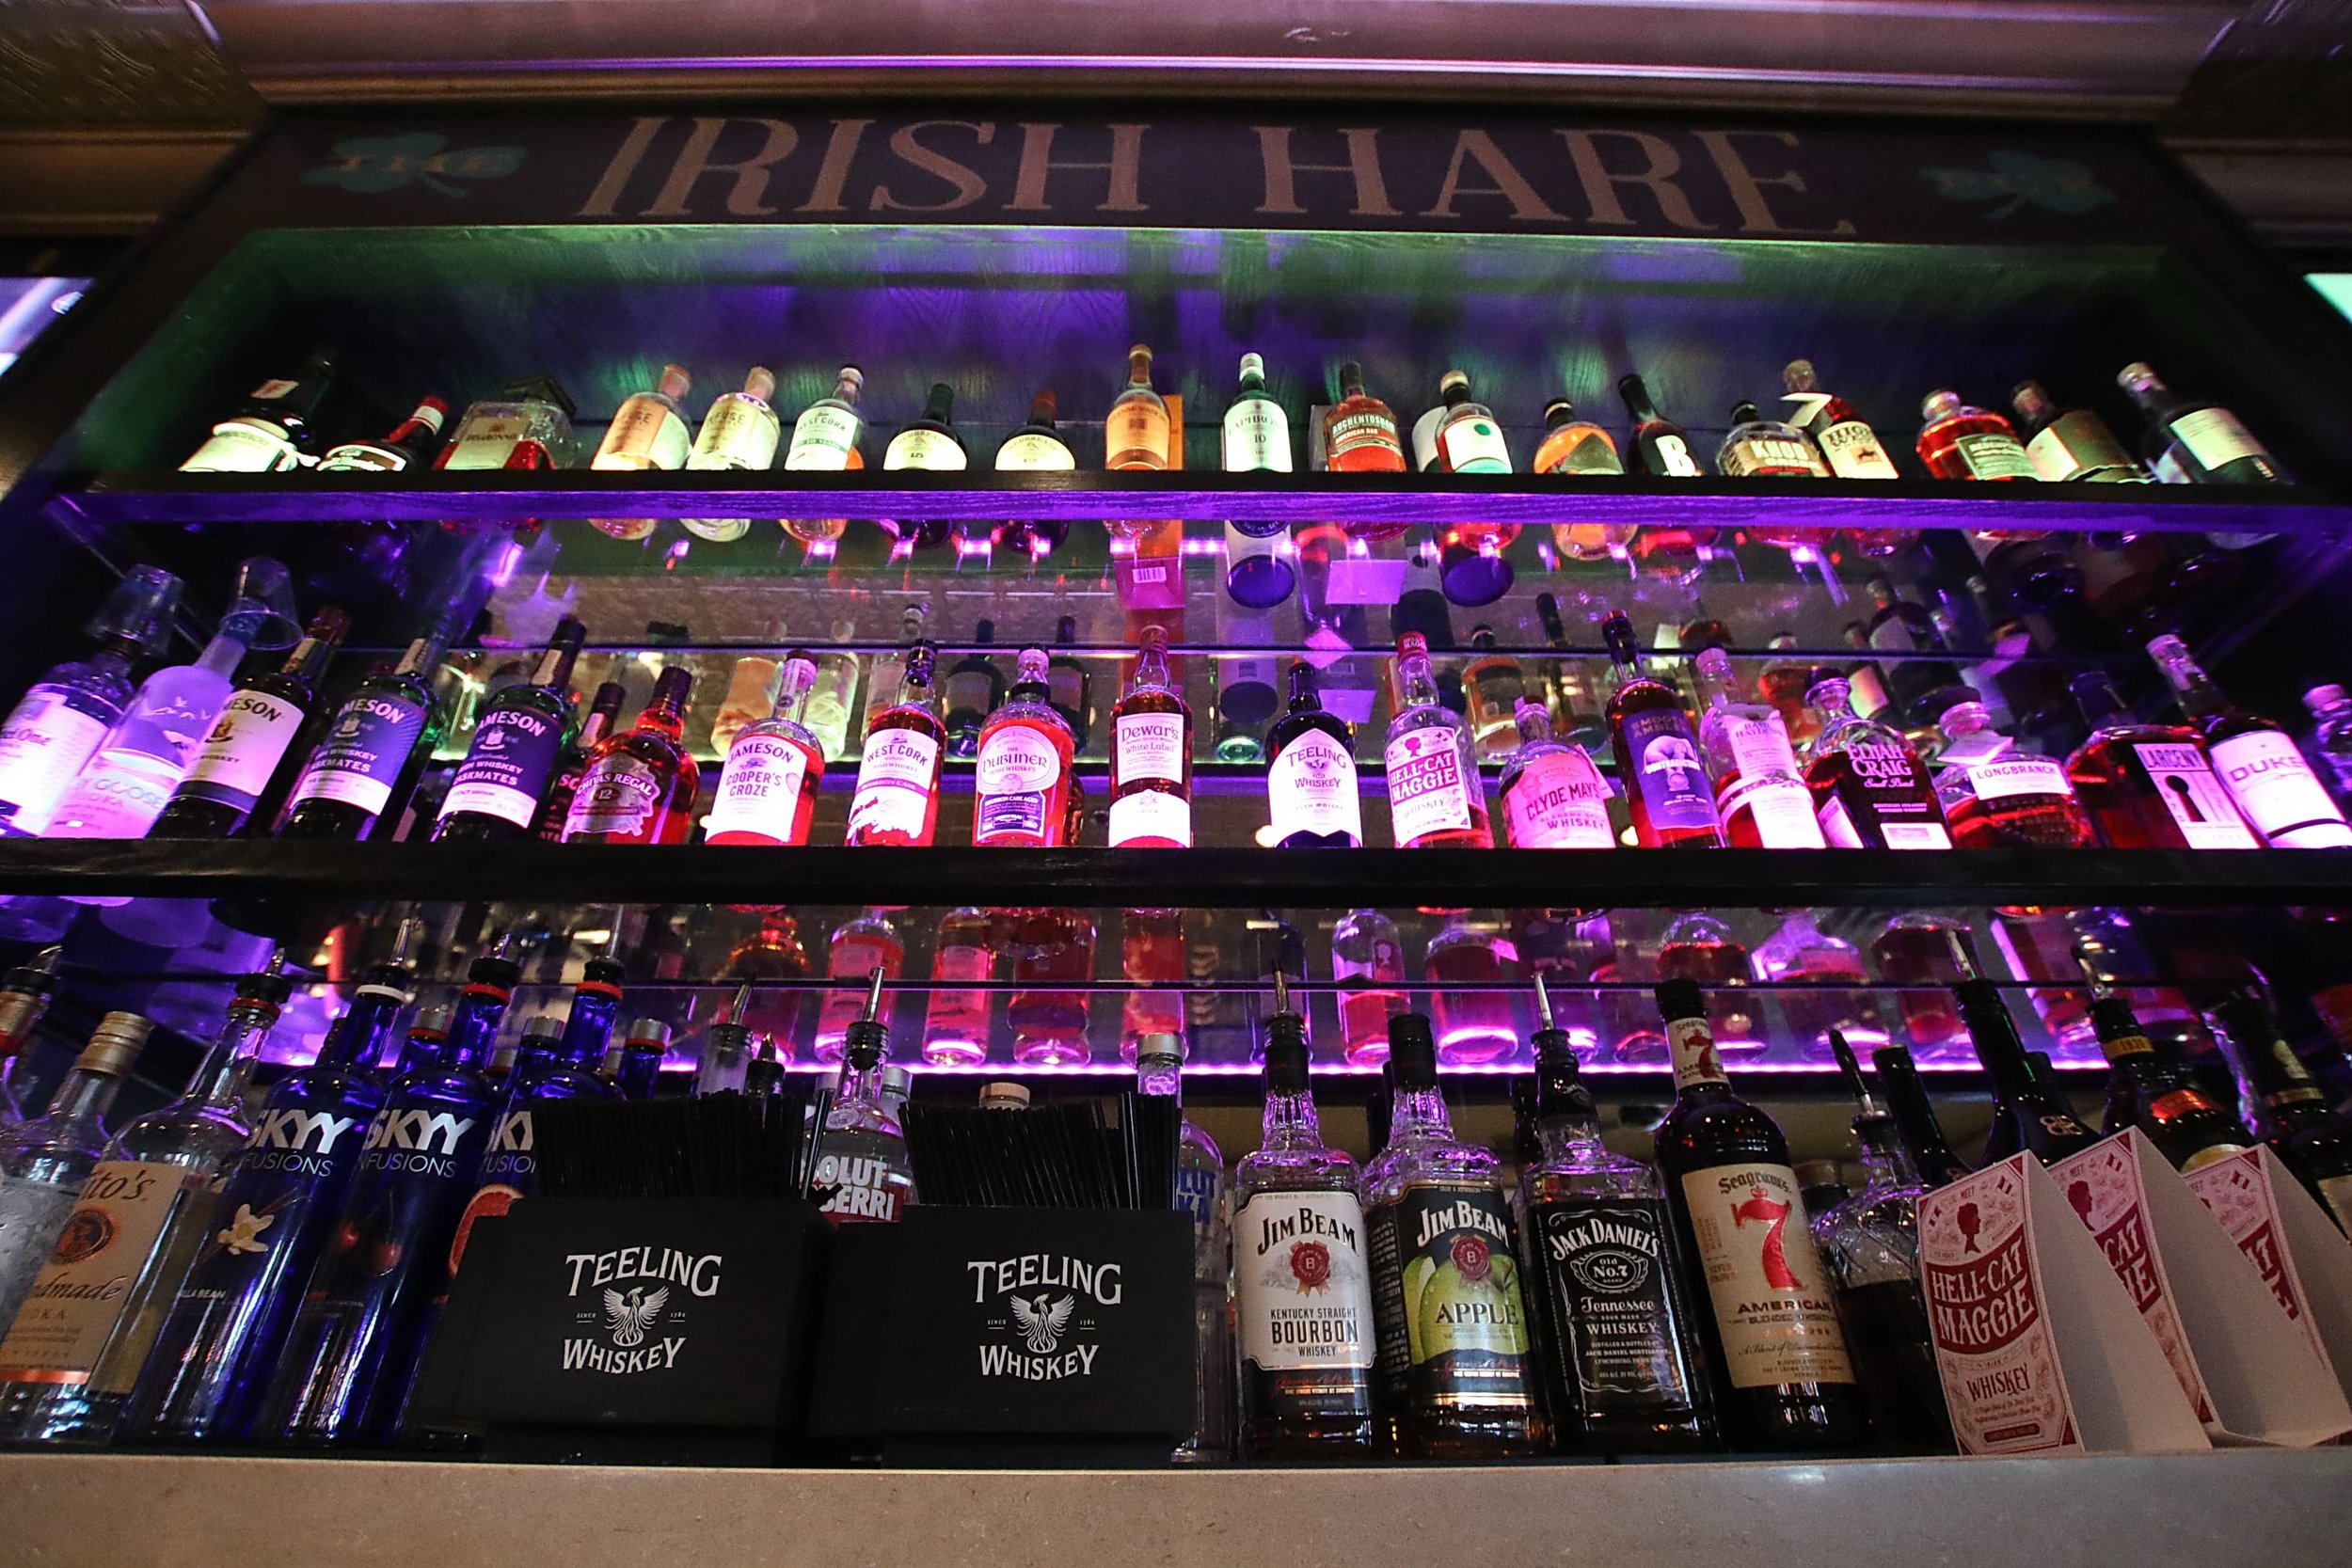 Irish Hare Pub